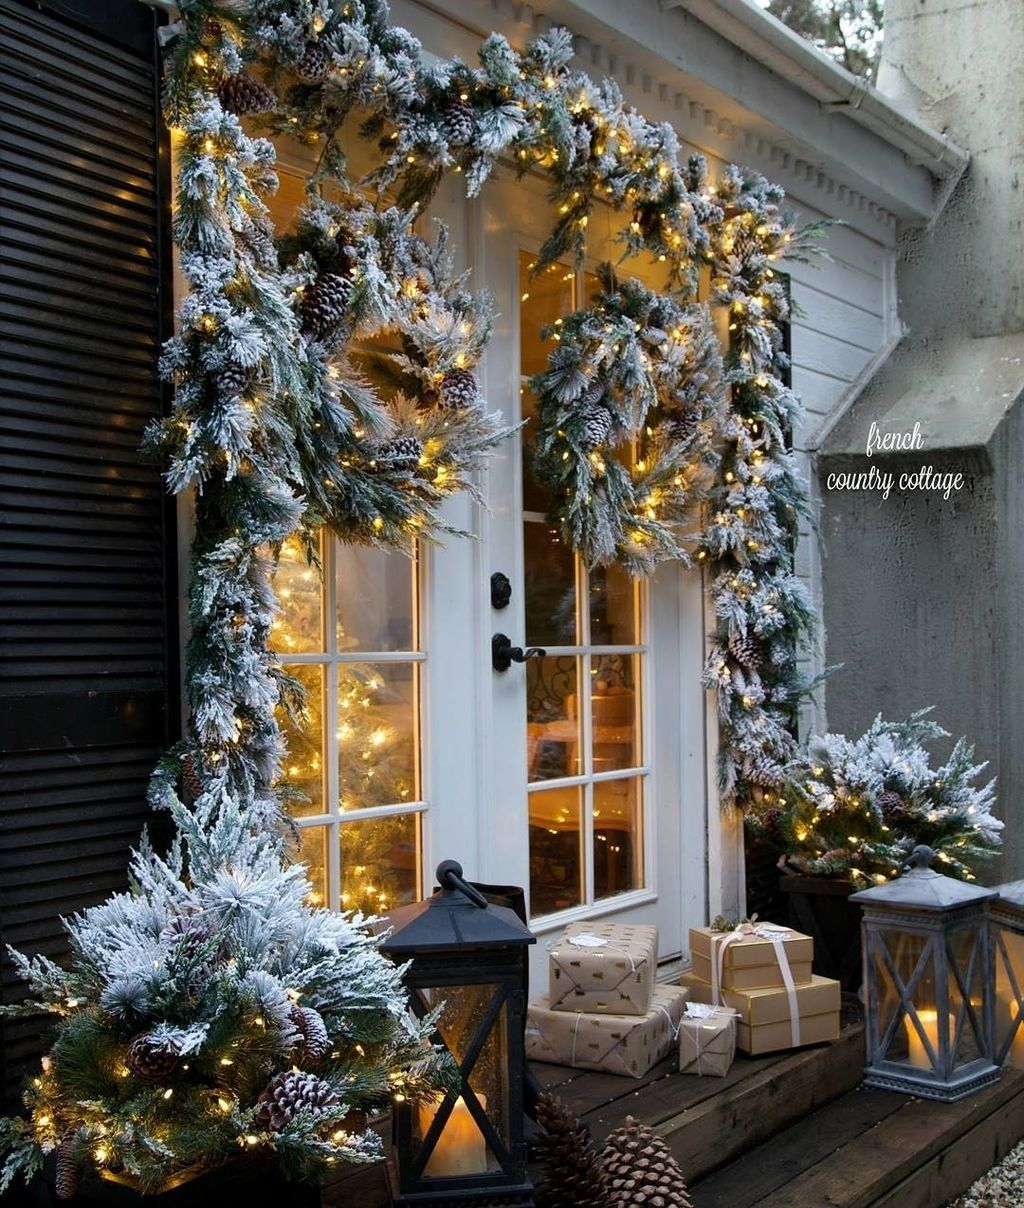 Pin By Robyn Hess On Shabby Classy Outdoor Christmas Decorations